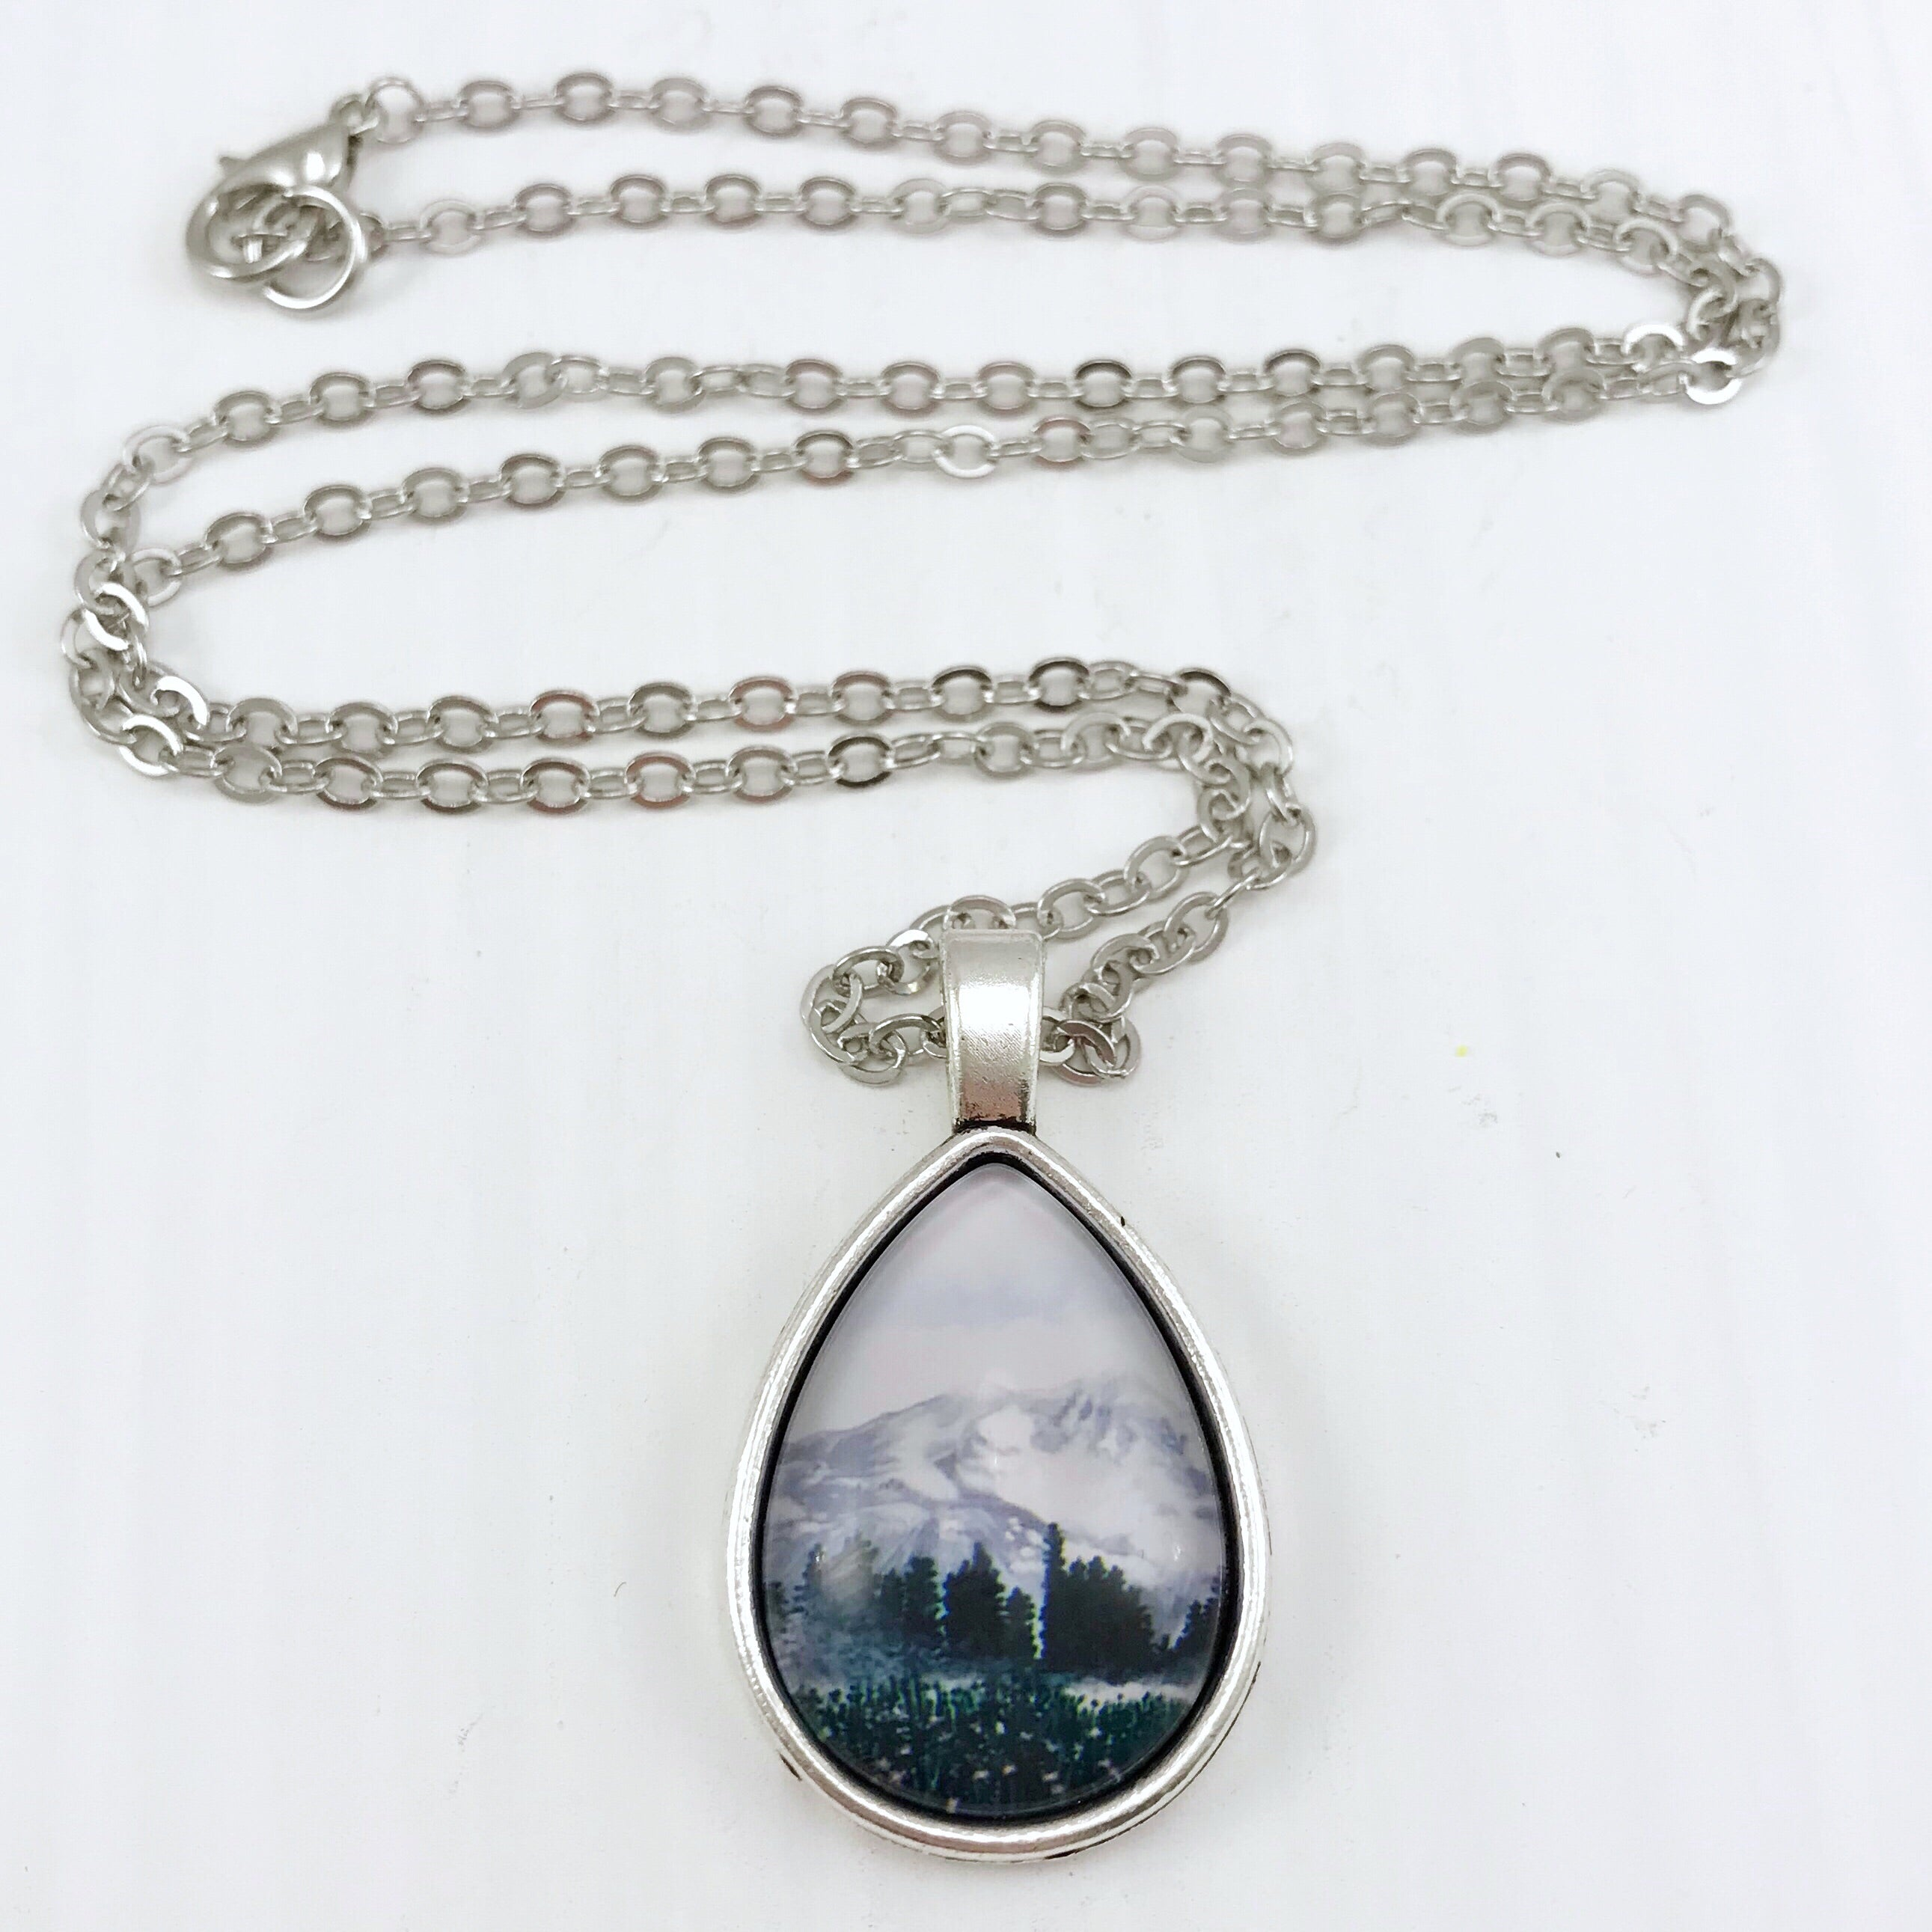 Snowy Landscape Teardrop Necklace - Antique Silver